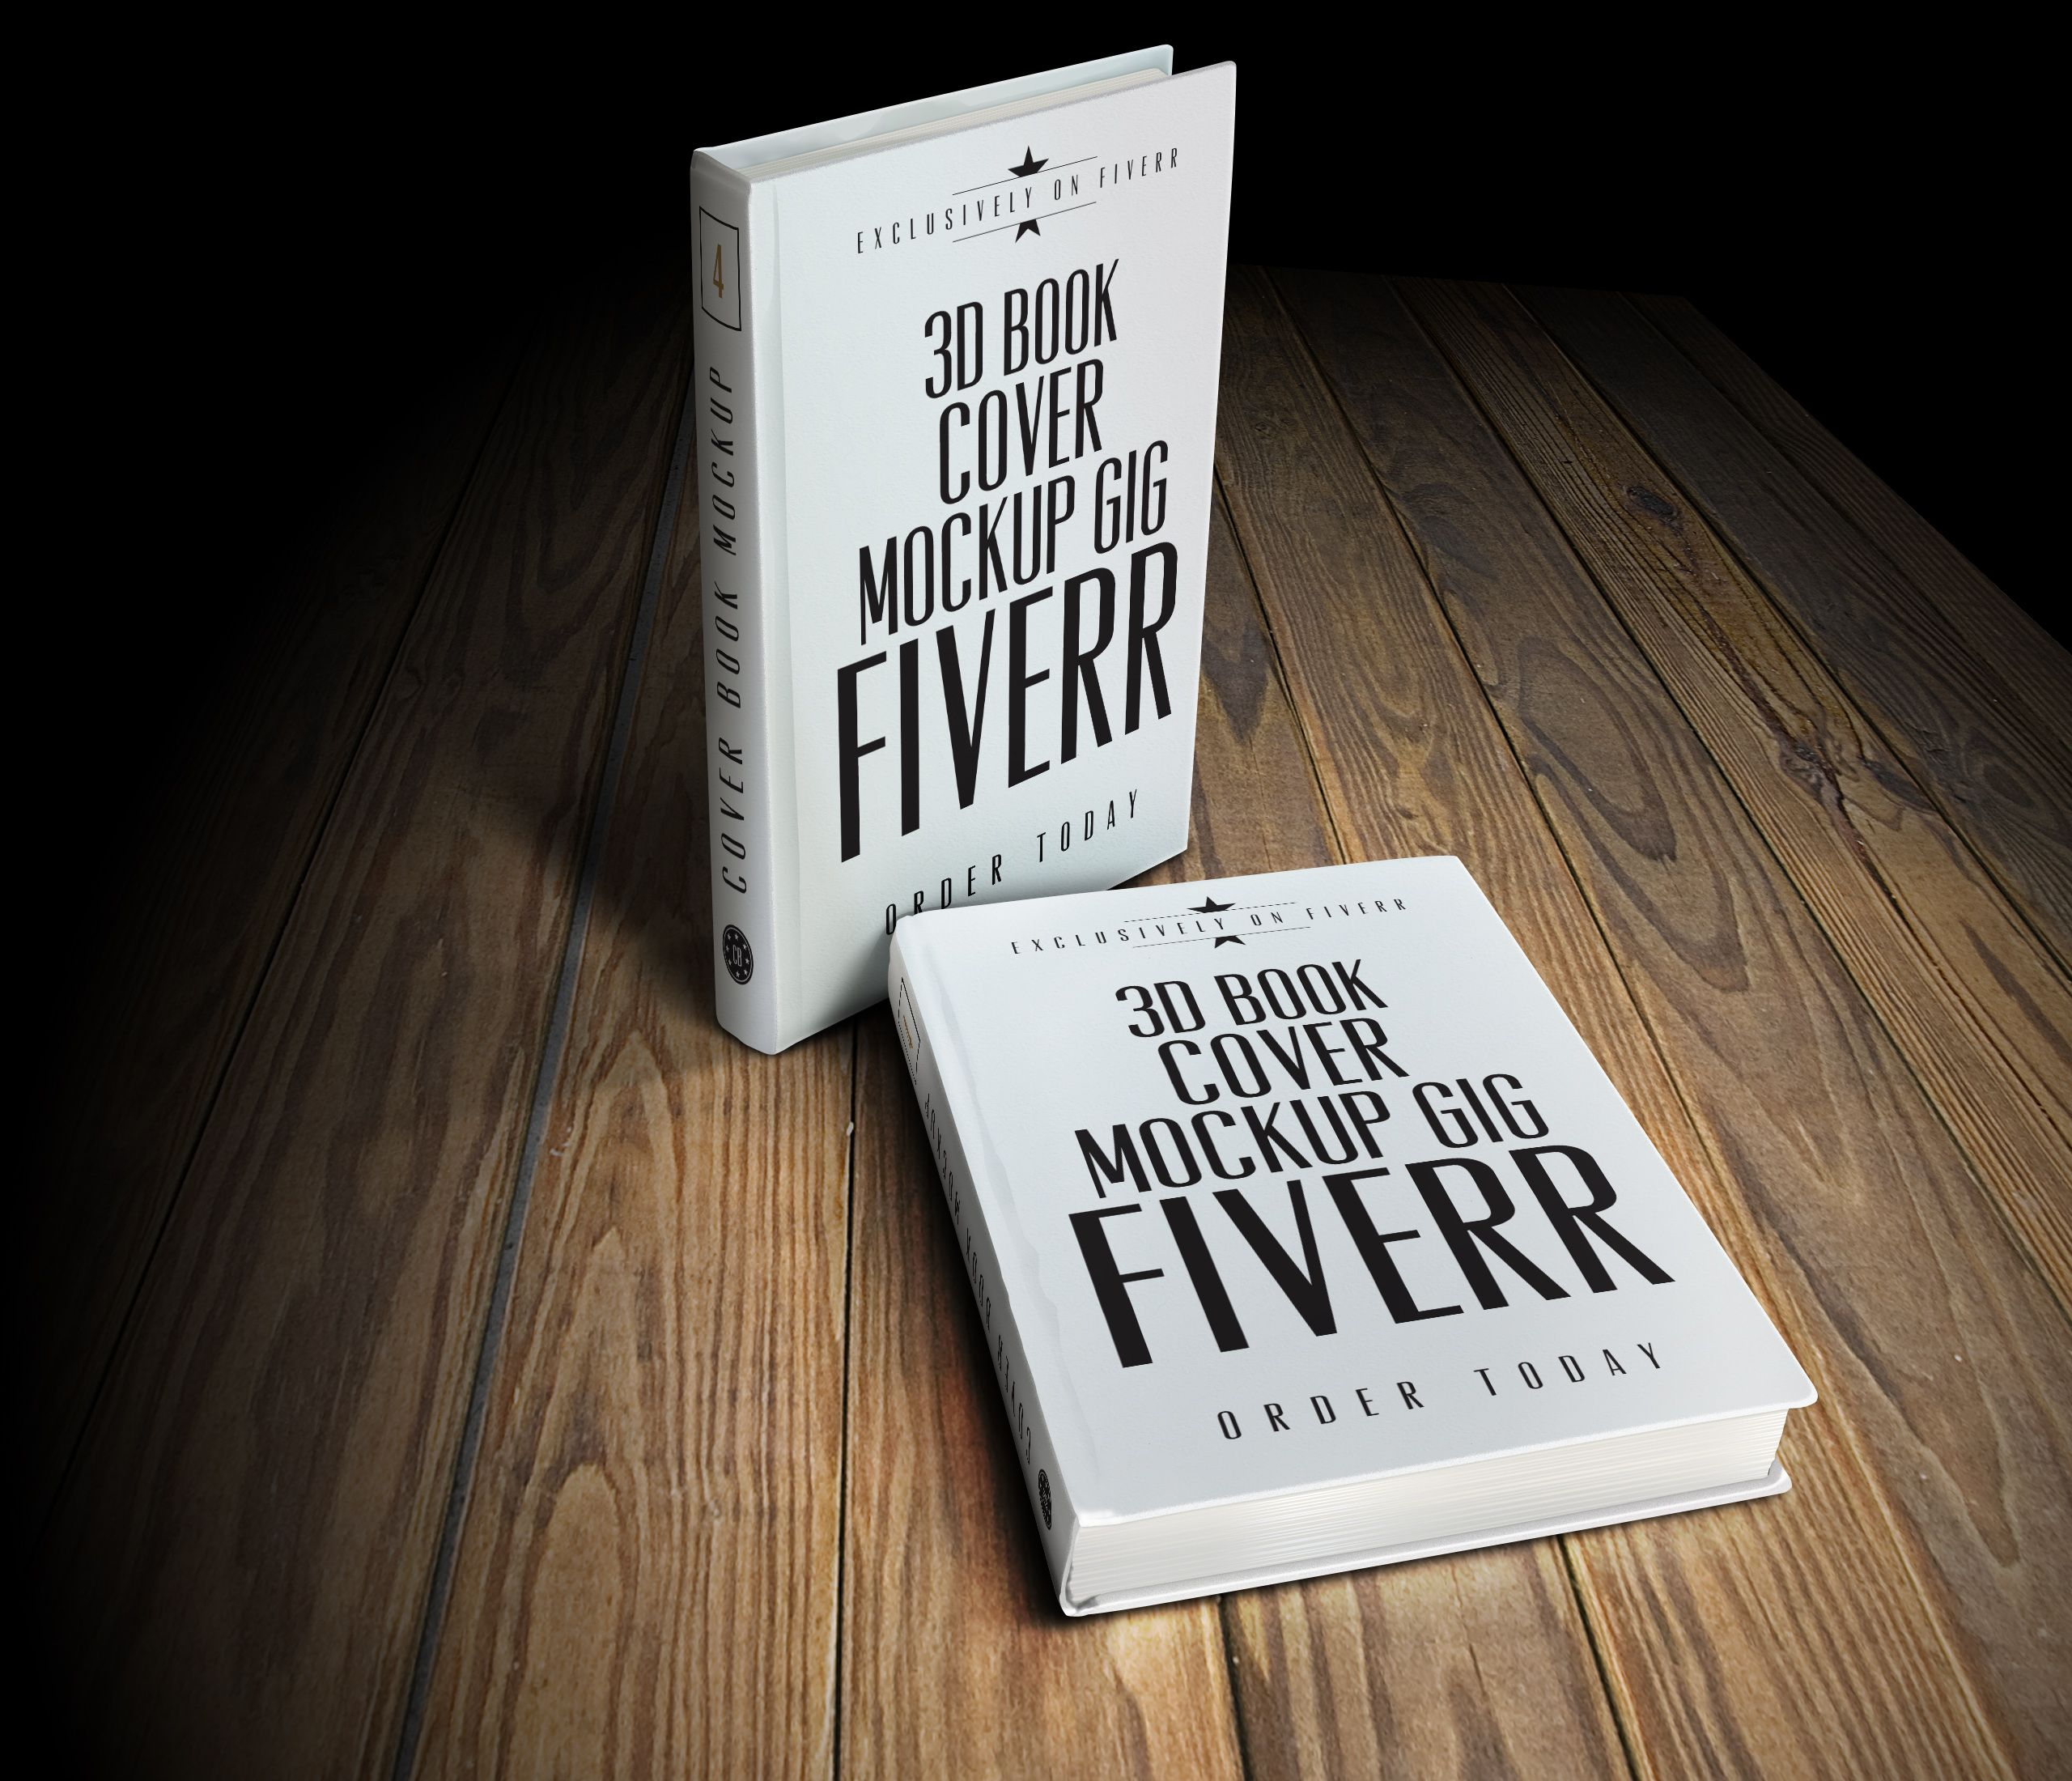 Convert your 2d cover into an amazing 3d book mockup ebook cover nikkydesign i will convert your 2d cover into an amazing 3d book mockup for 5 on fiverr fandeluxe Images